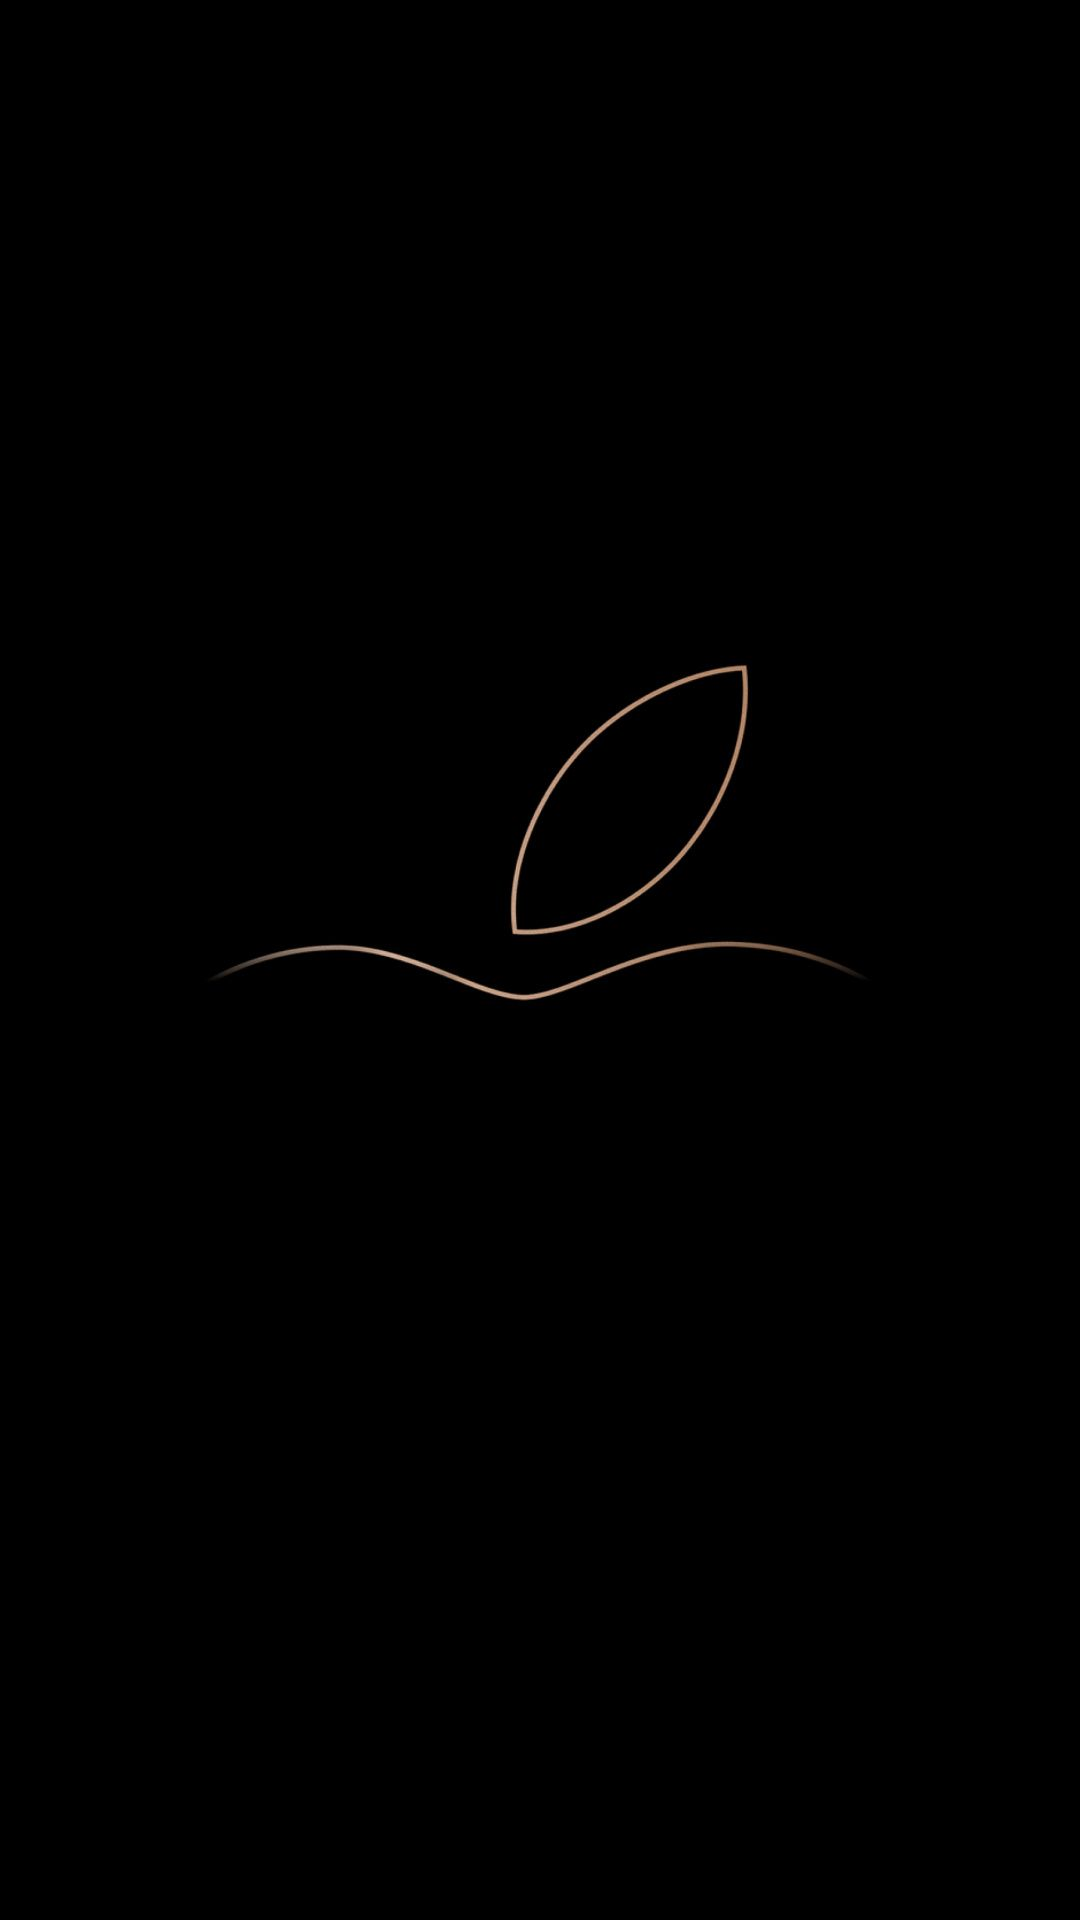 Apple Logo Minimal Dark Wallpaper Apple Wallpaper Iphone Iphone Wallpaper Video Dark Wallpaper Iphone